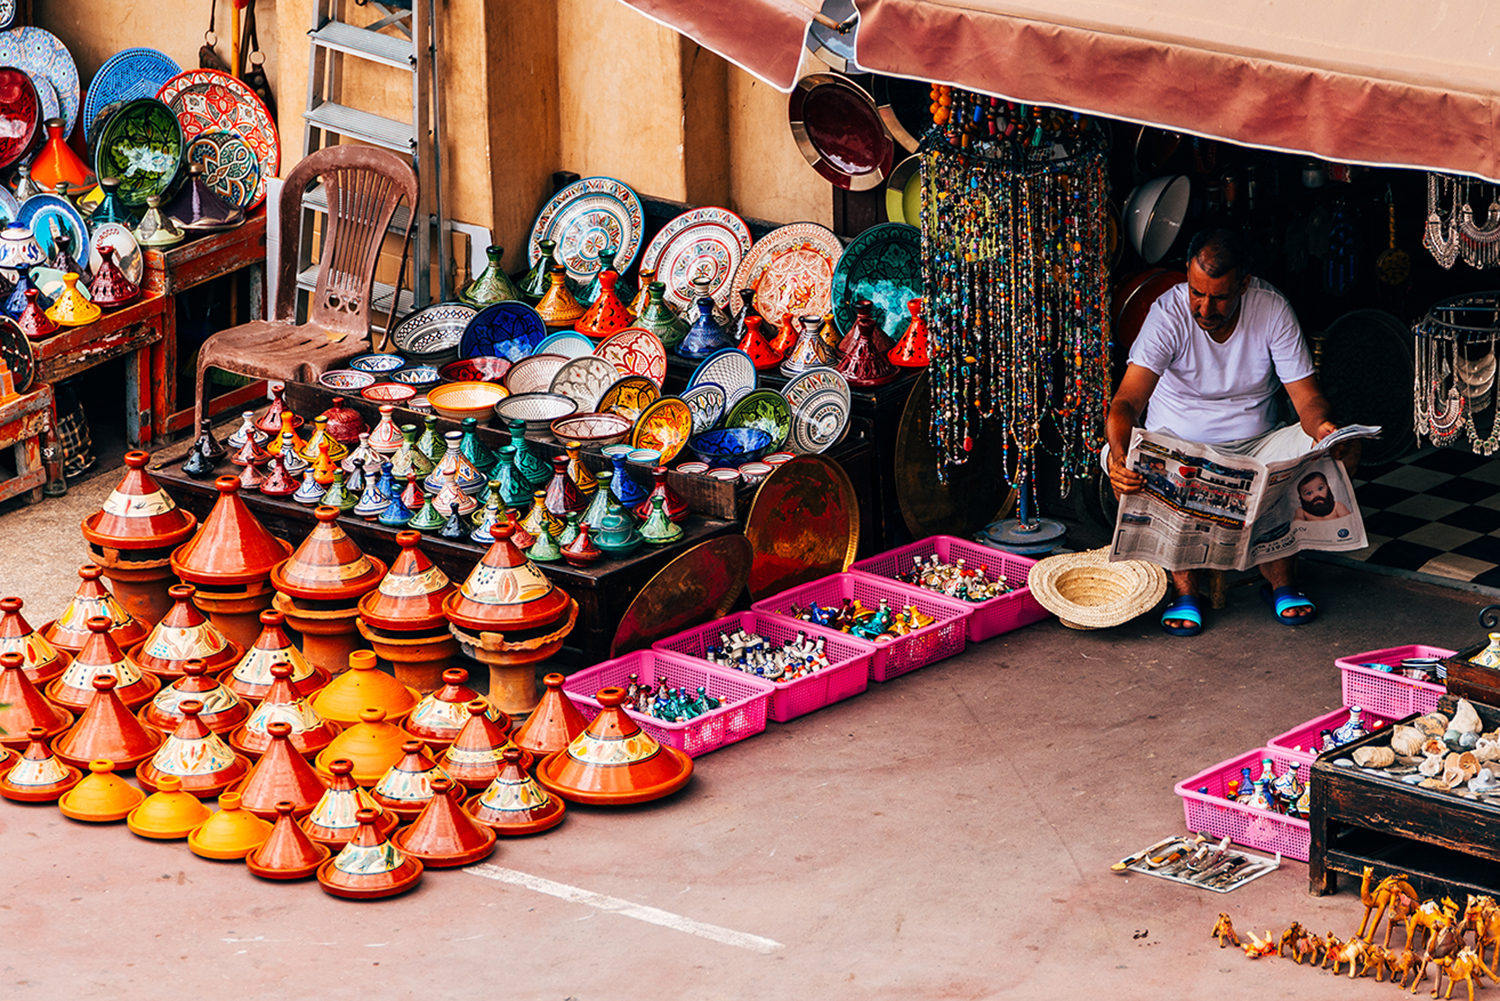 Street vendor selling moroccan handicrafts at Marrakech Medina